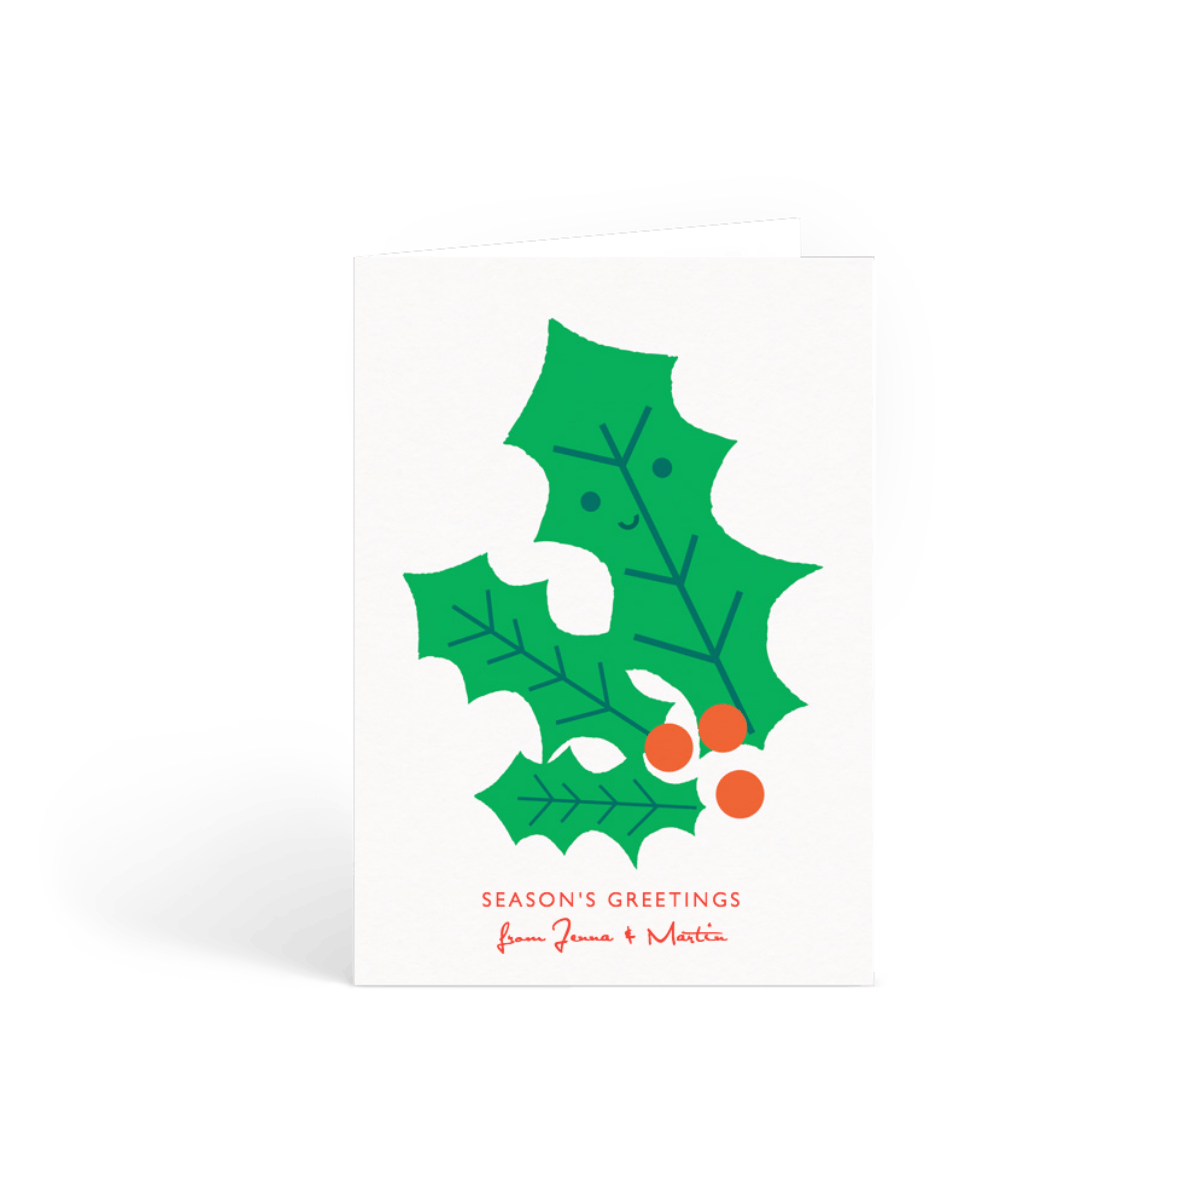 Https%3a%2f%2fwww.papier.com%2fproduct image%2f14303%2f2%2fhappy holly 3821 avant 1501749178.png?ixlib=rb 1.1